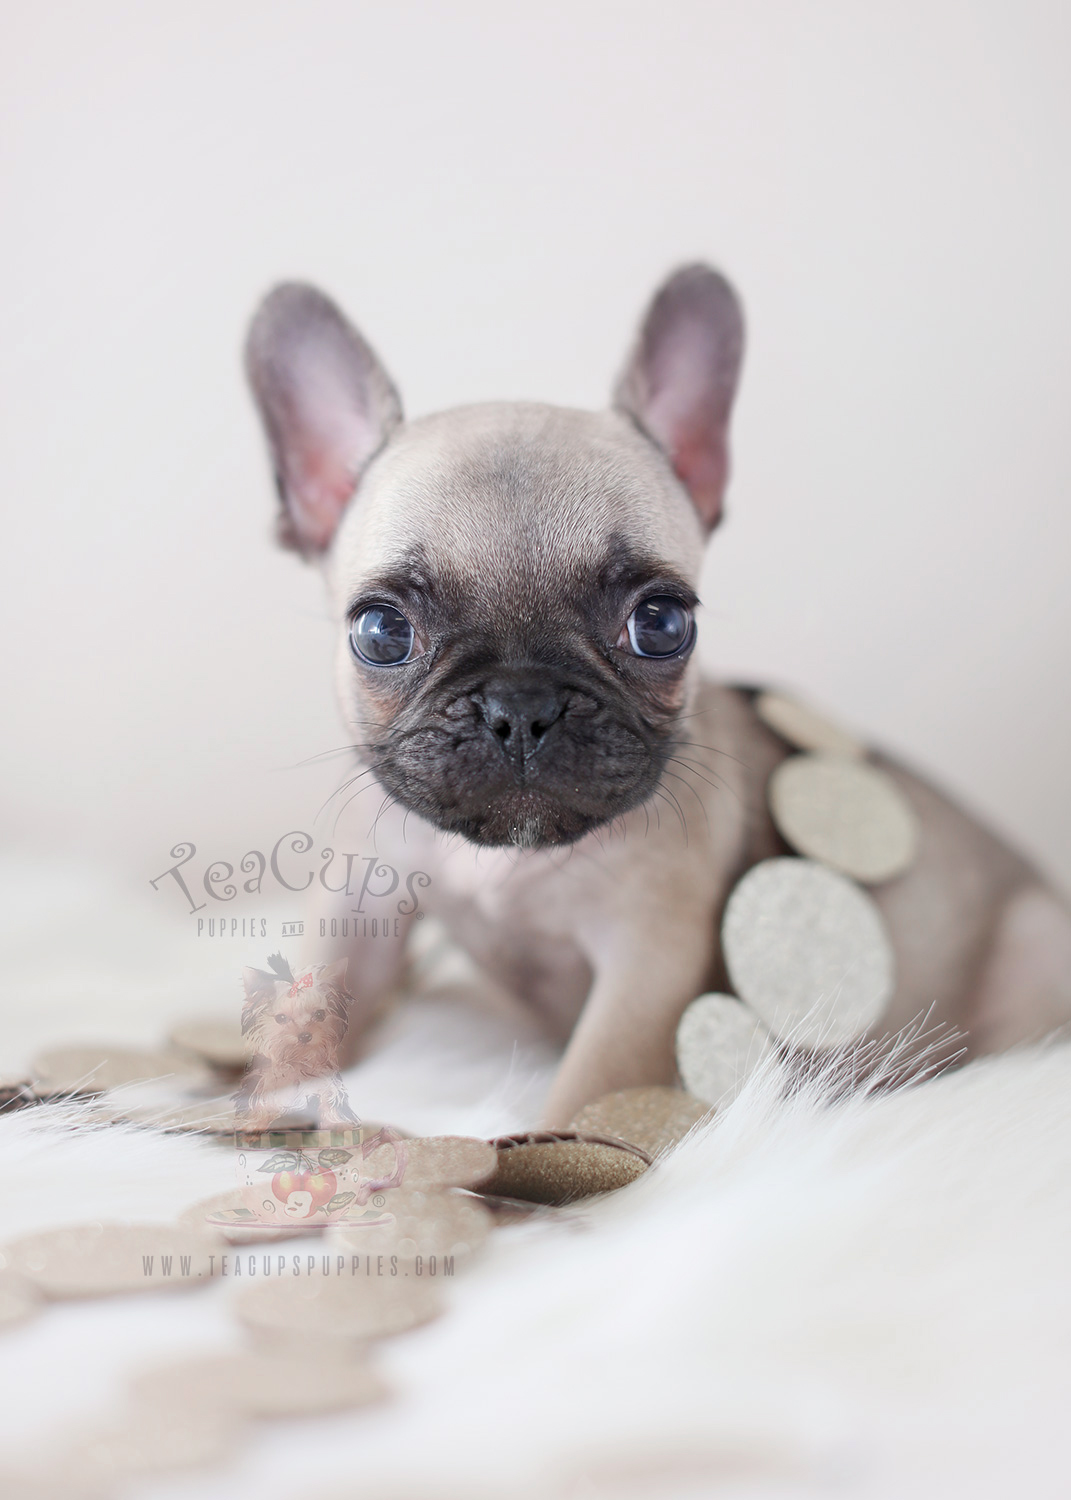 French Bulldog Puppies For Sale In The South Florida Area Teacups